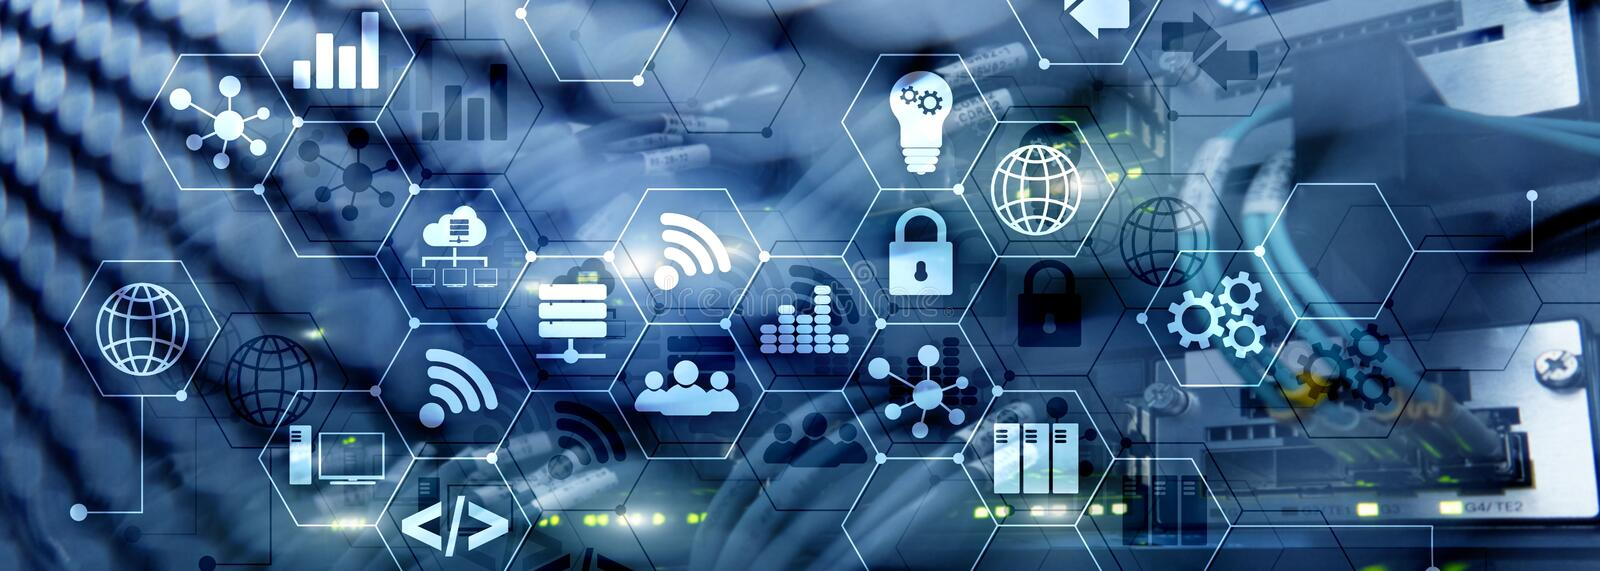 ICT - information and telecommunication technology and IOT - internet of things concepts. Diagrams with icons on server. Room backgrounds stock photography